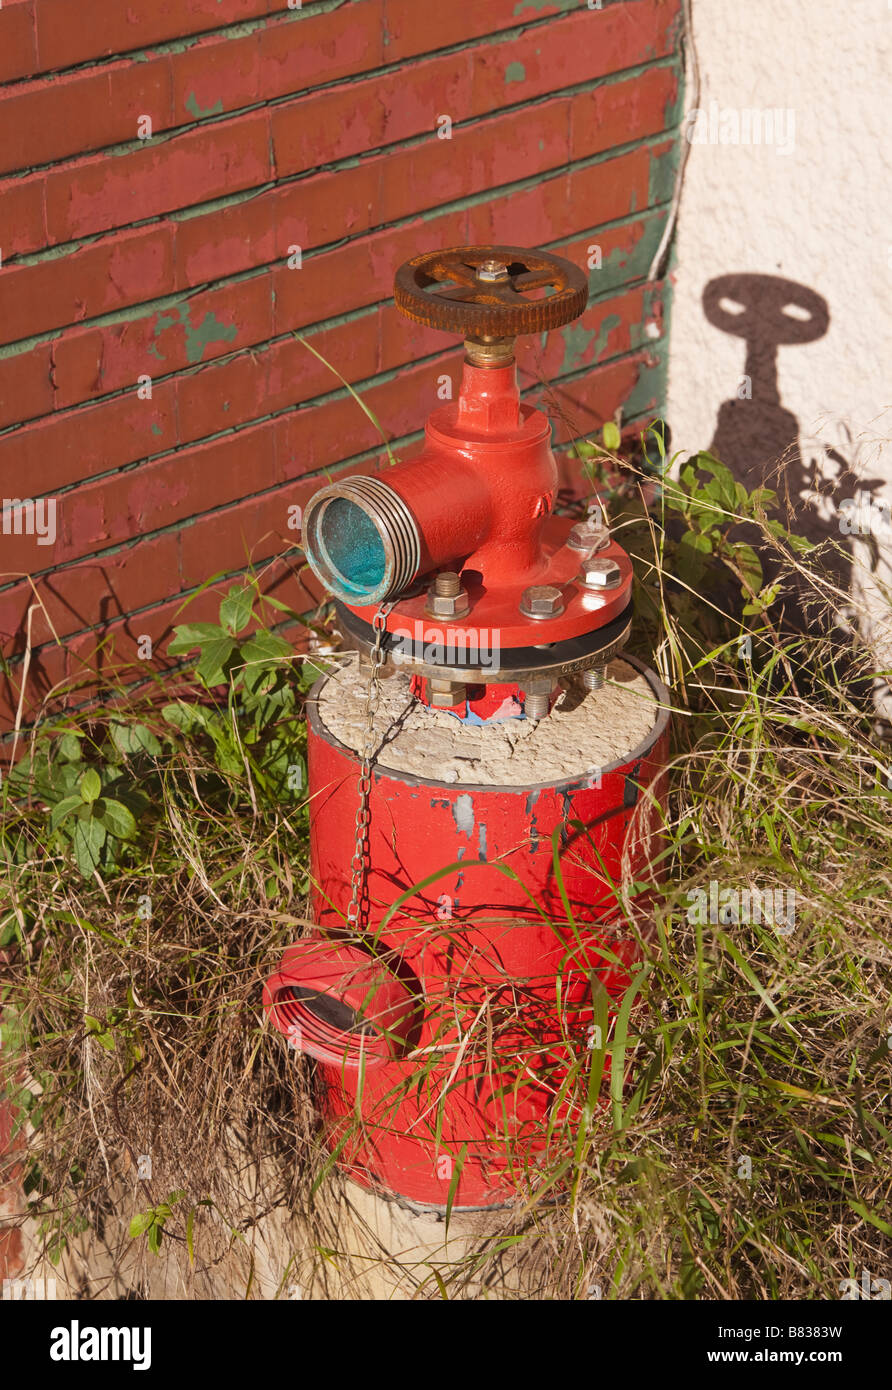 Fire hydrant overgrown with grass and weeds - Stock Image